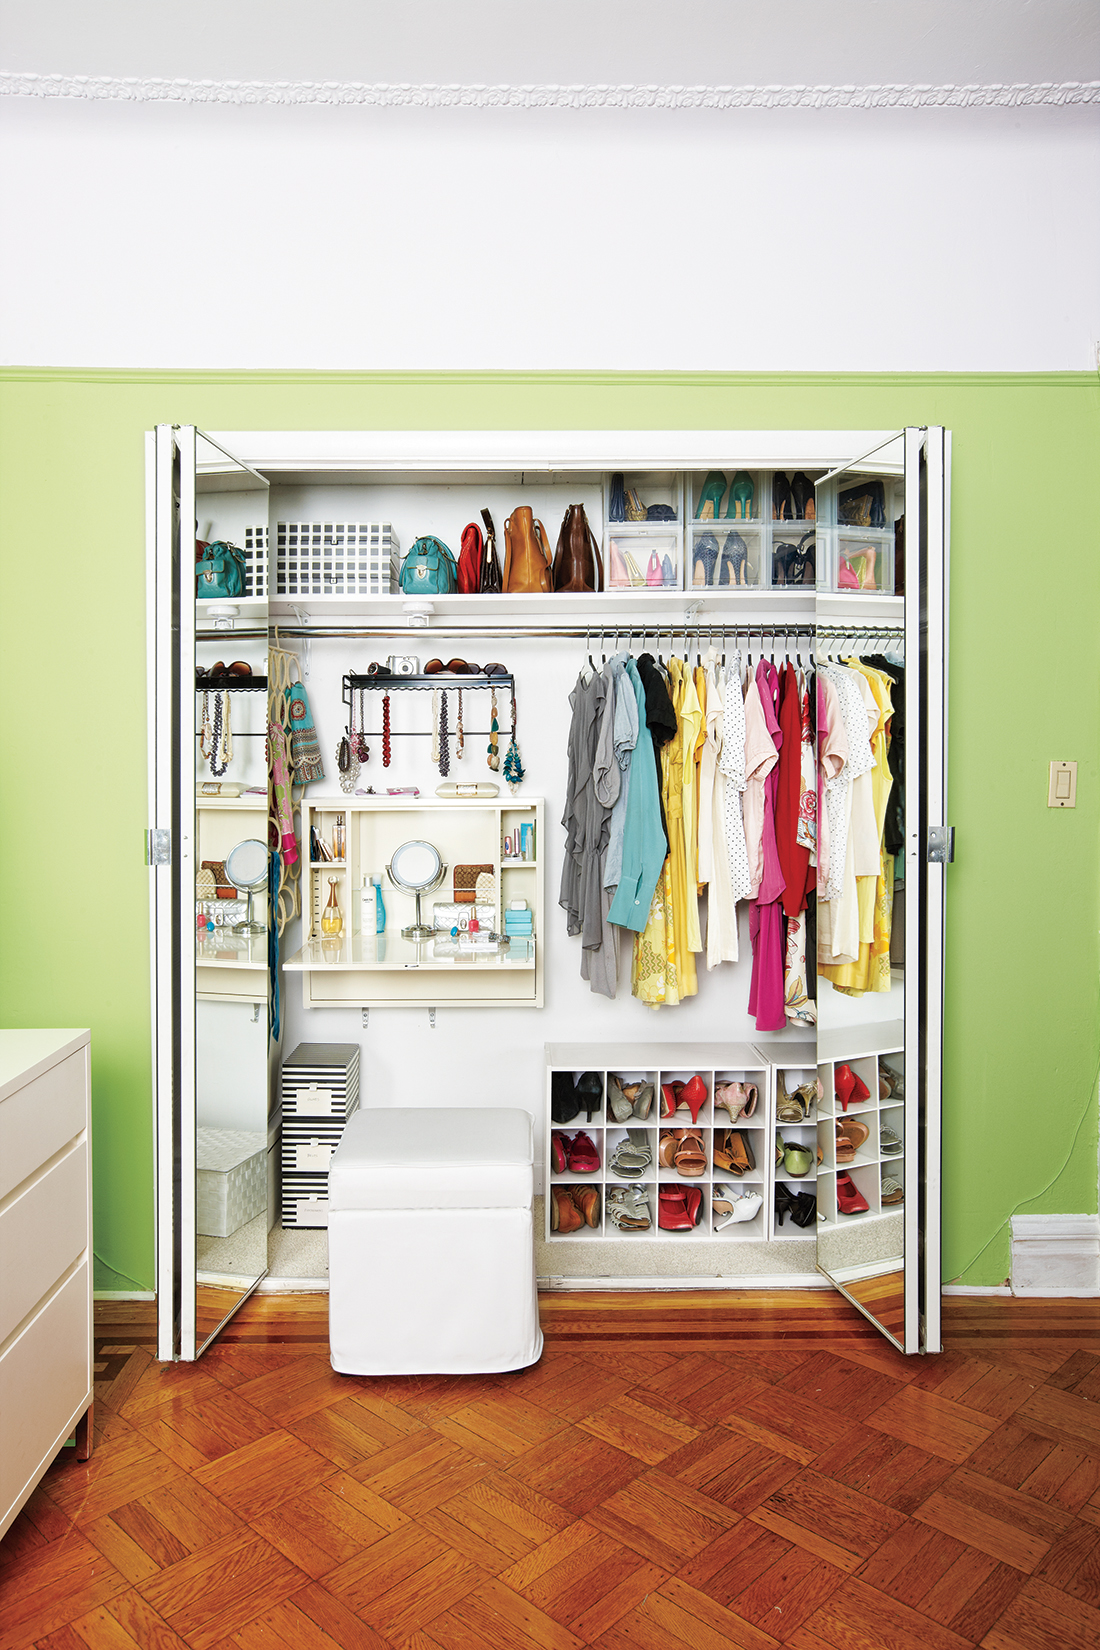 Organized closet in green room